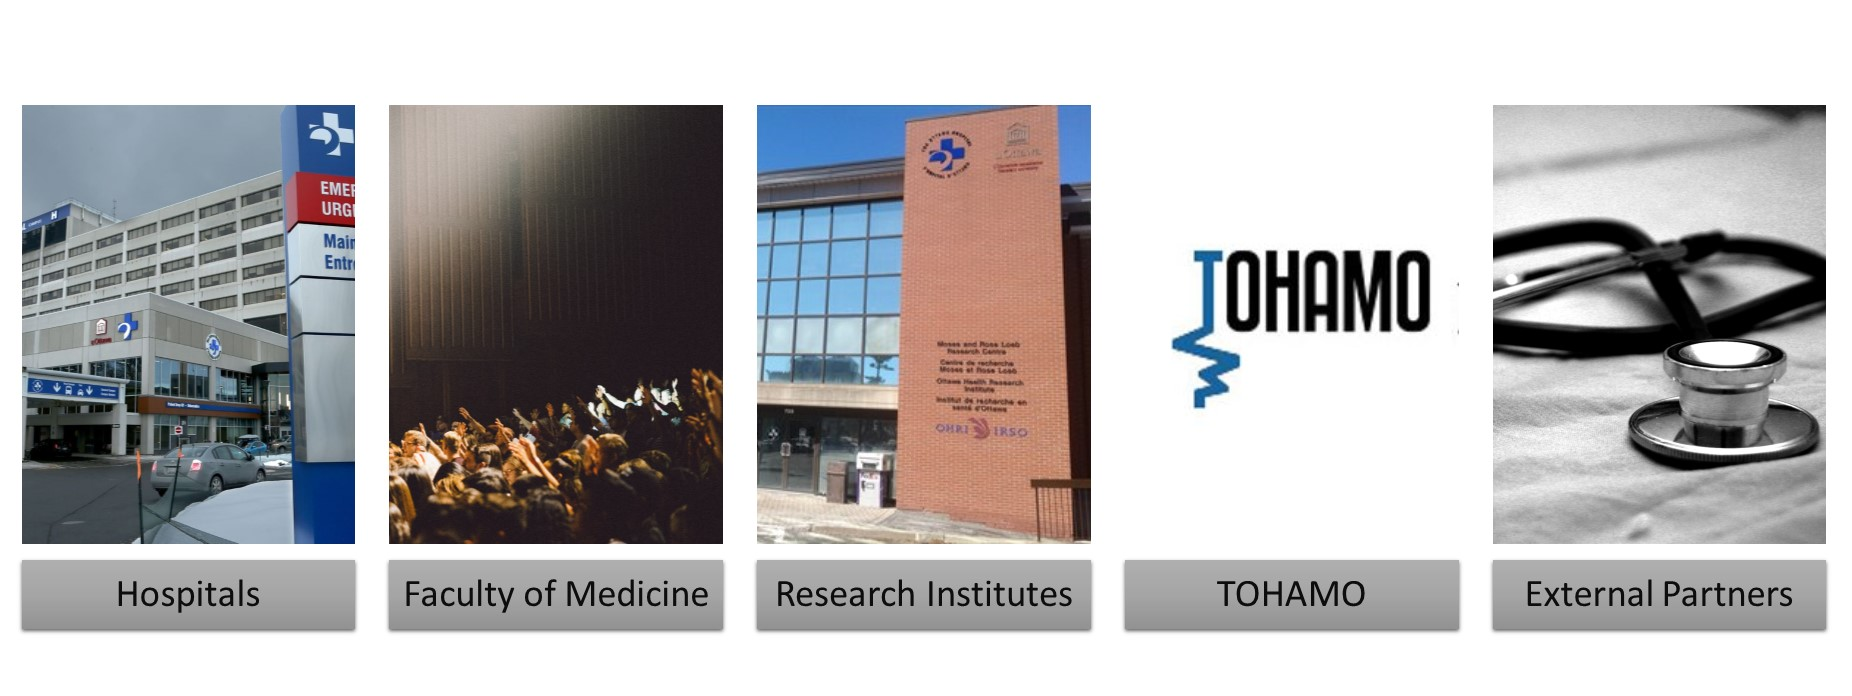 hospitals (with a TOH photo), faculty of medicine (figure showing the structure of the FoM and how DoS fits within it), Research Institute (a photo of a building housing OHRI), TOHAMO (the TOHAMO logo), and external partners (a stethosco